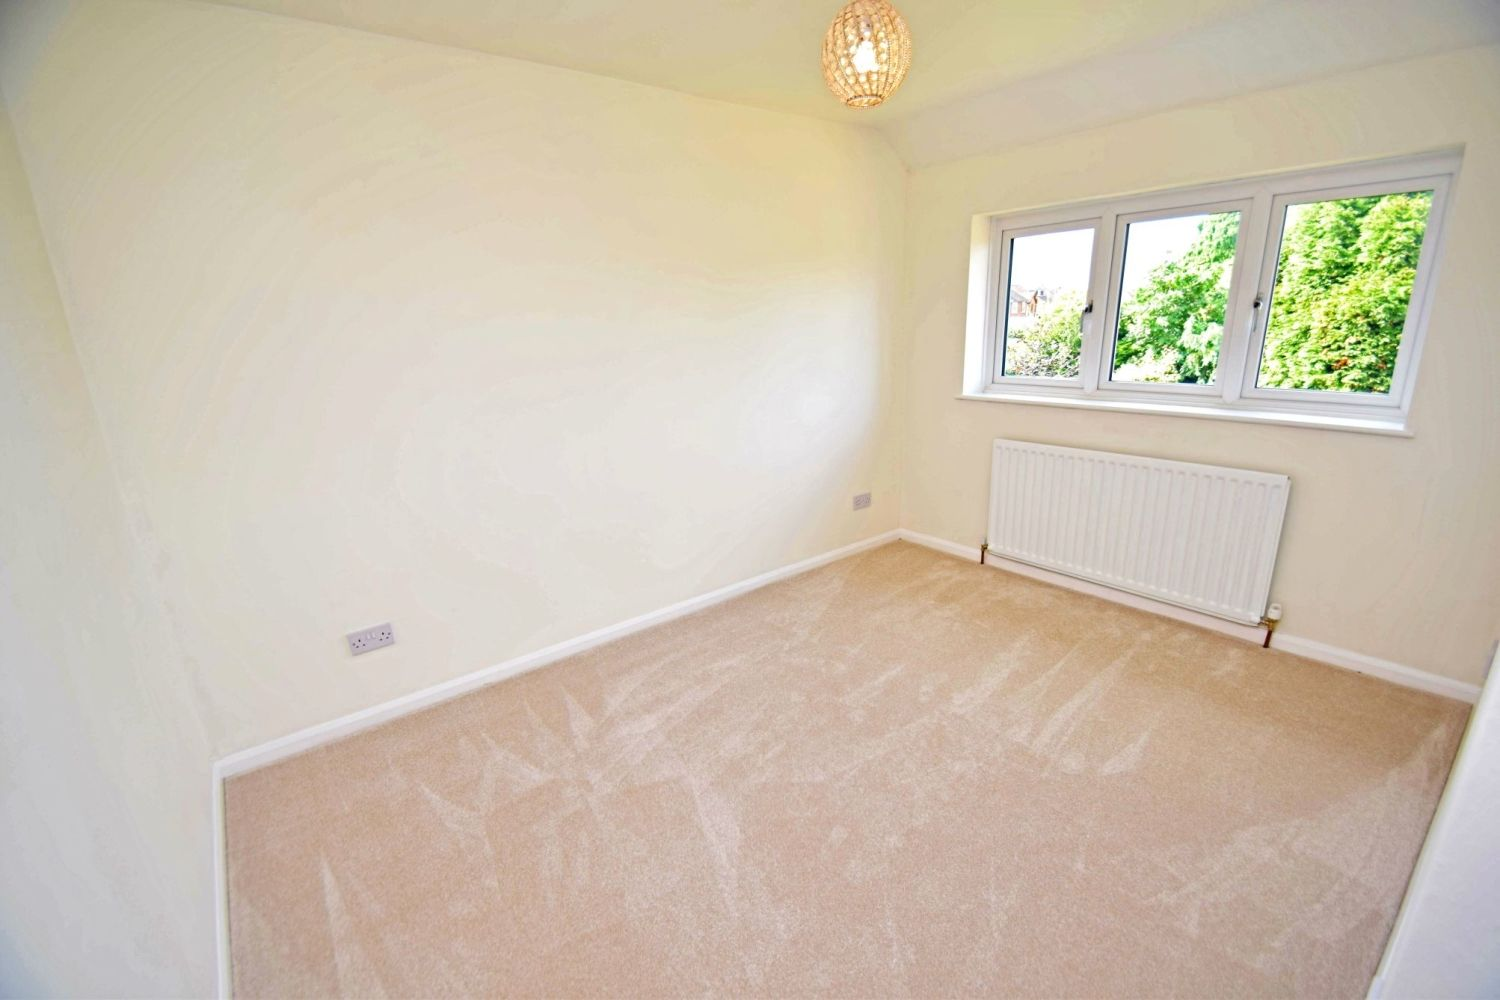 3 bed semi-detached for sale in Beachcroft Road, Wall Heath 8